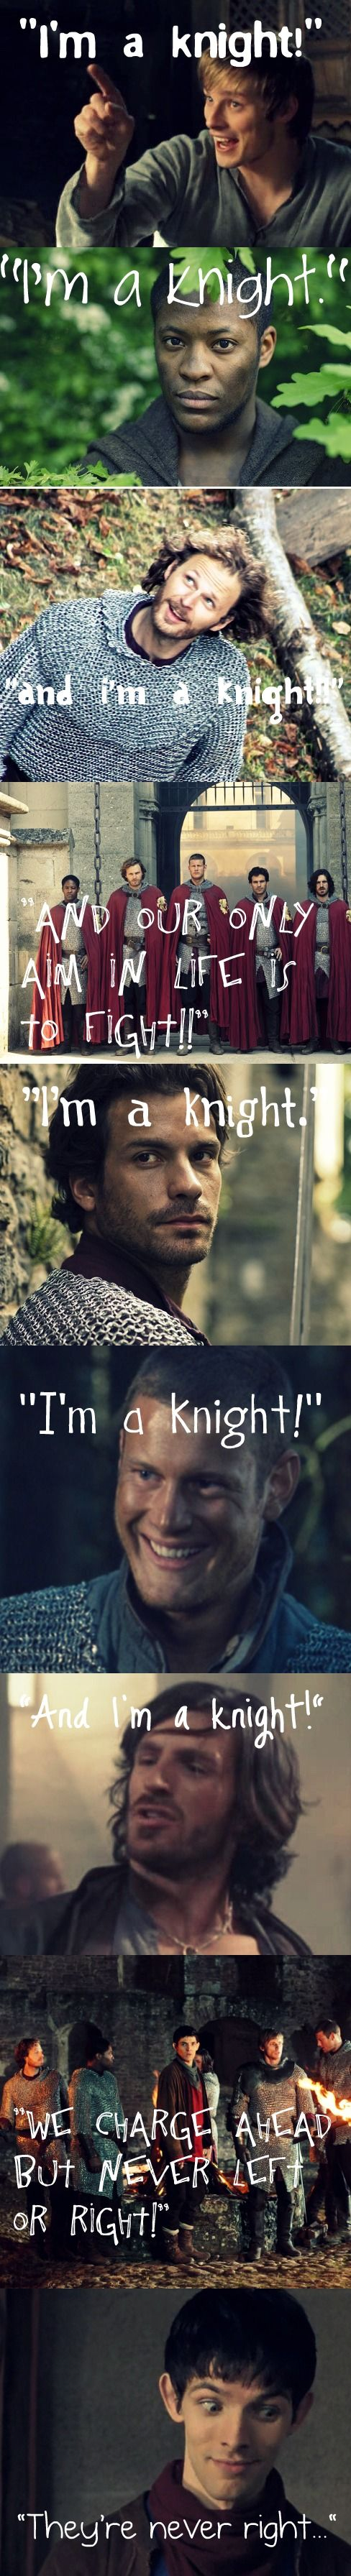 I'm a Knight - Merlin Style Threeeeee by MerlinLemon.deviantart.com on @deviantART